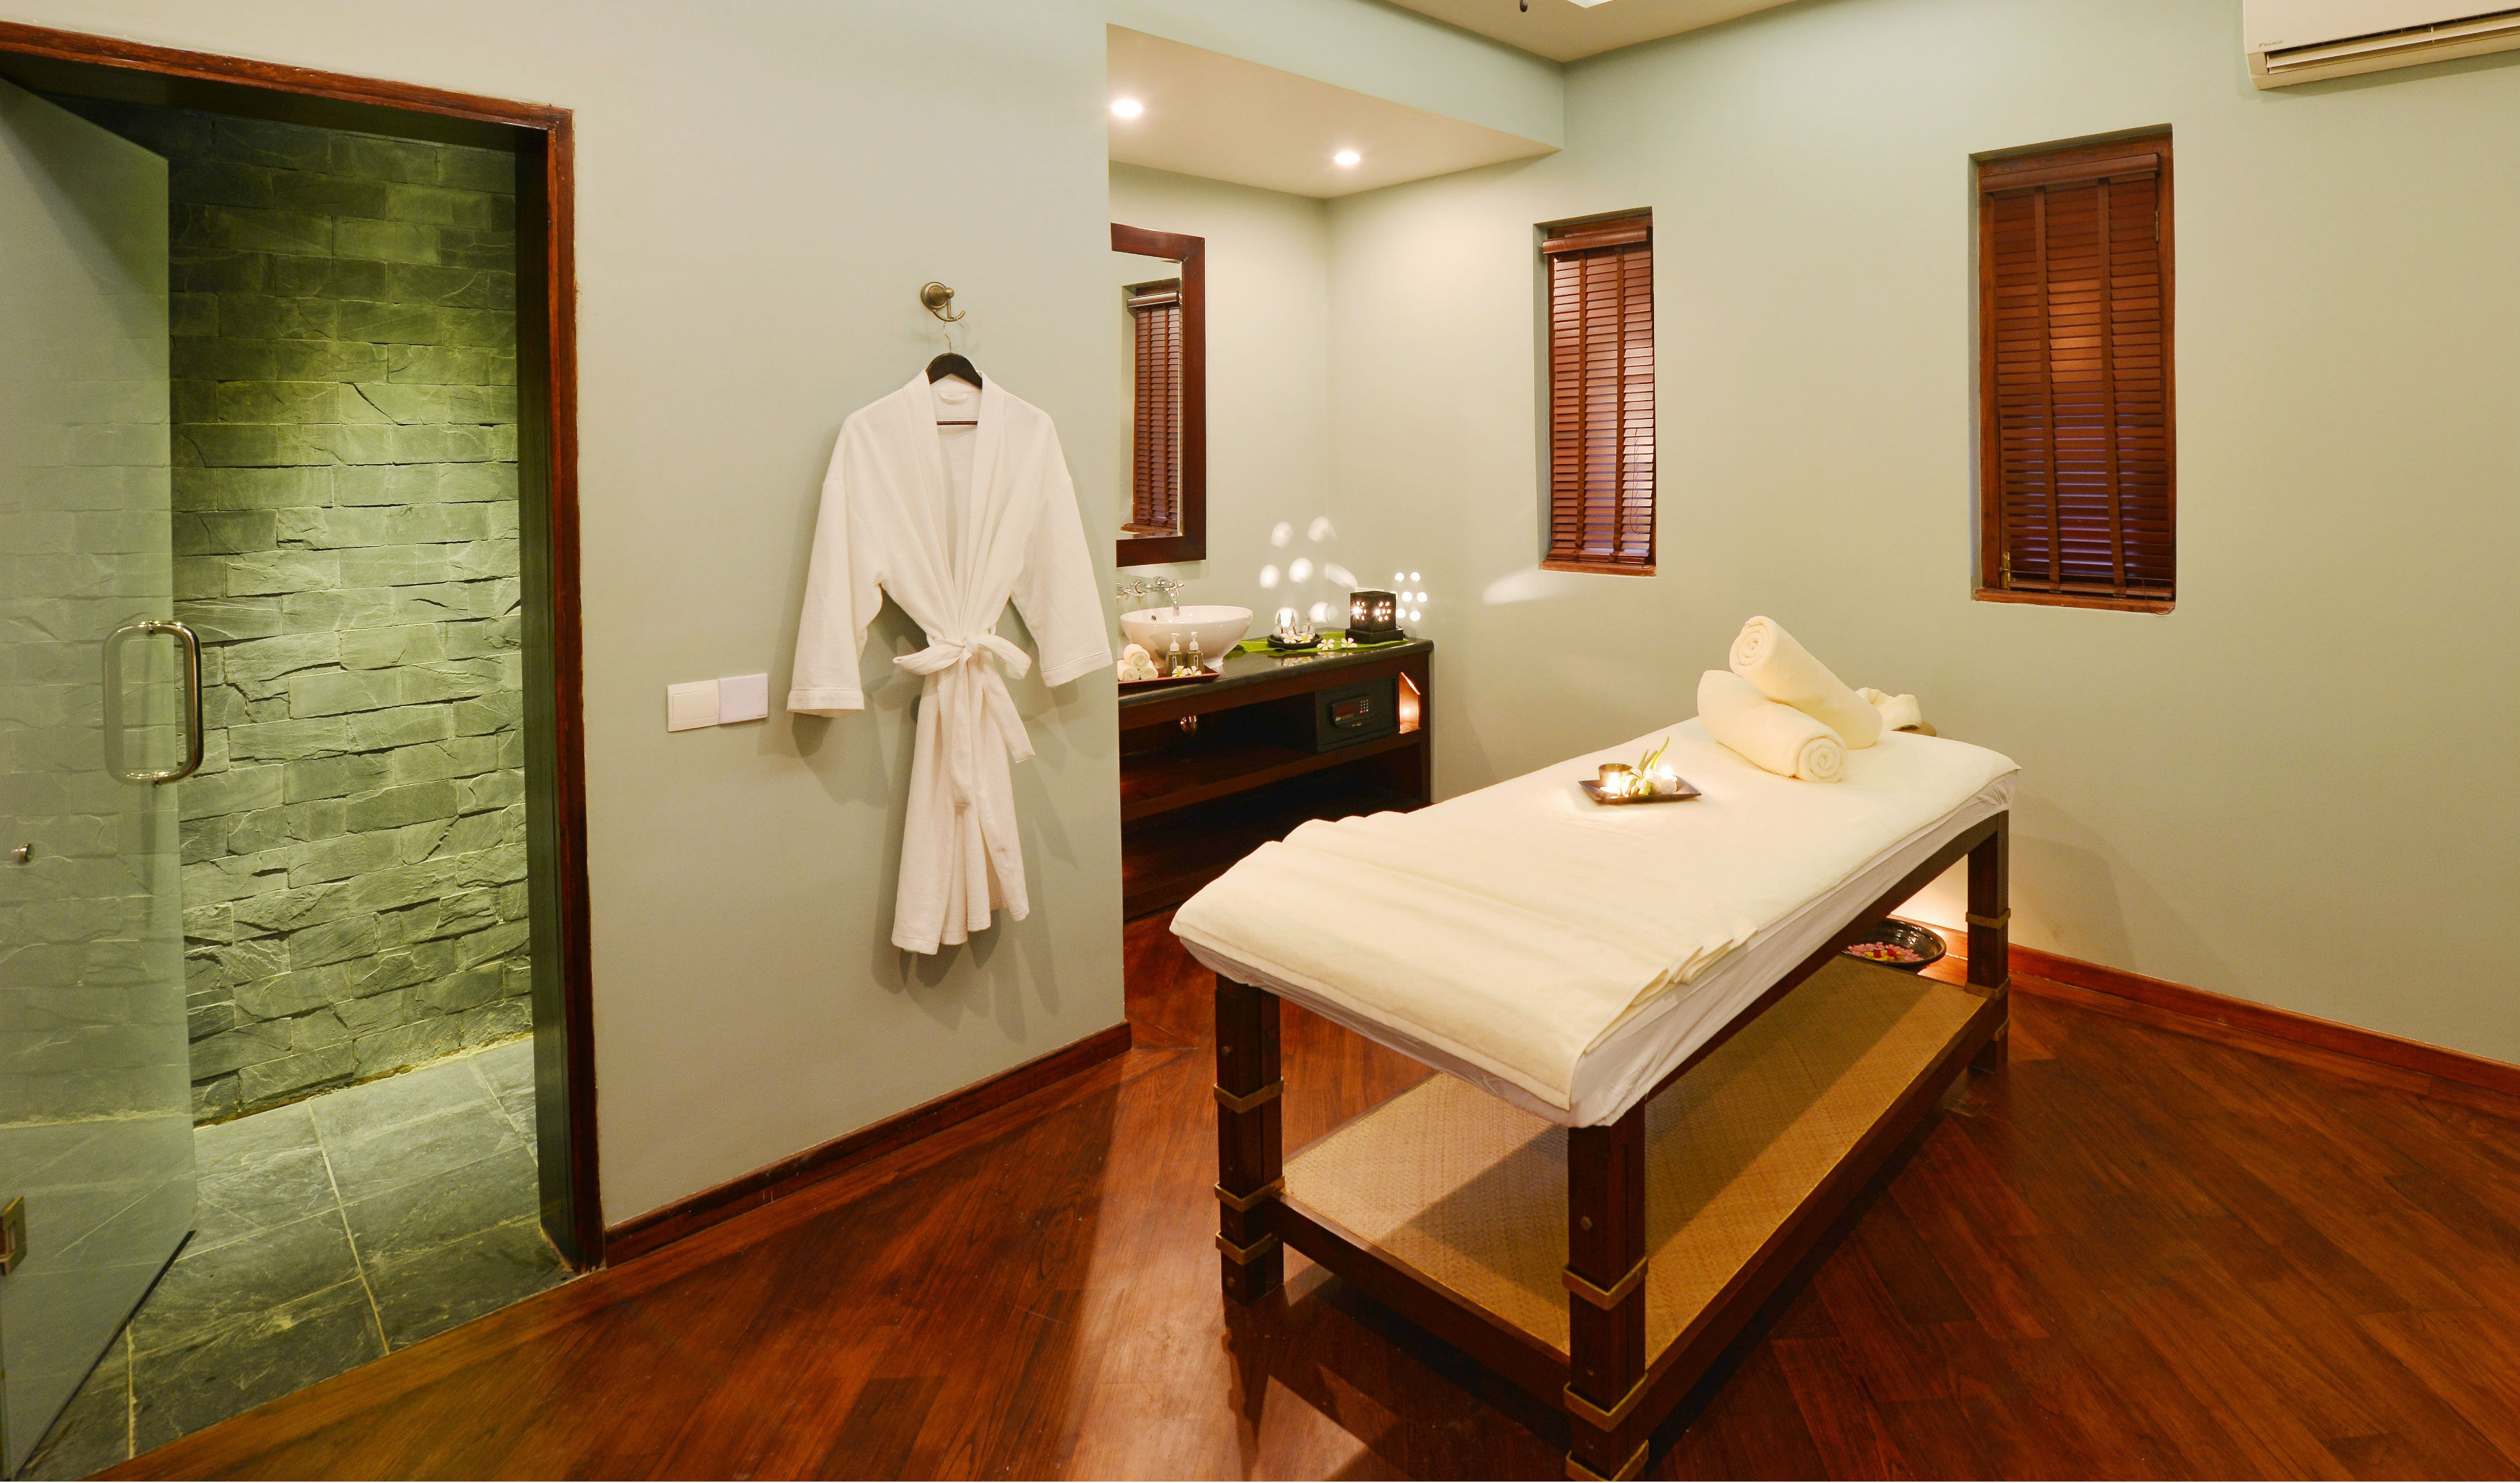 Indulge in a rejuvenating Spa treatment